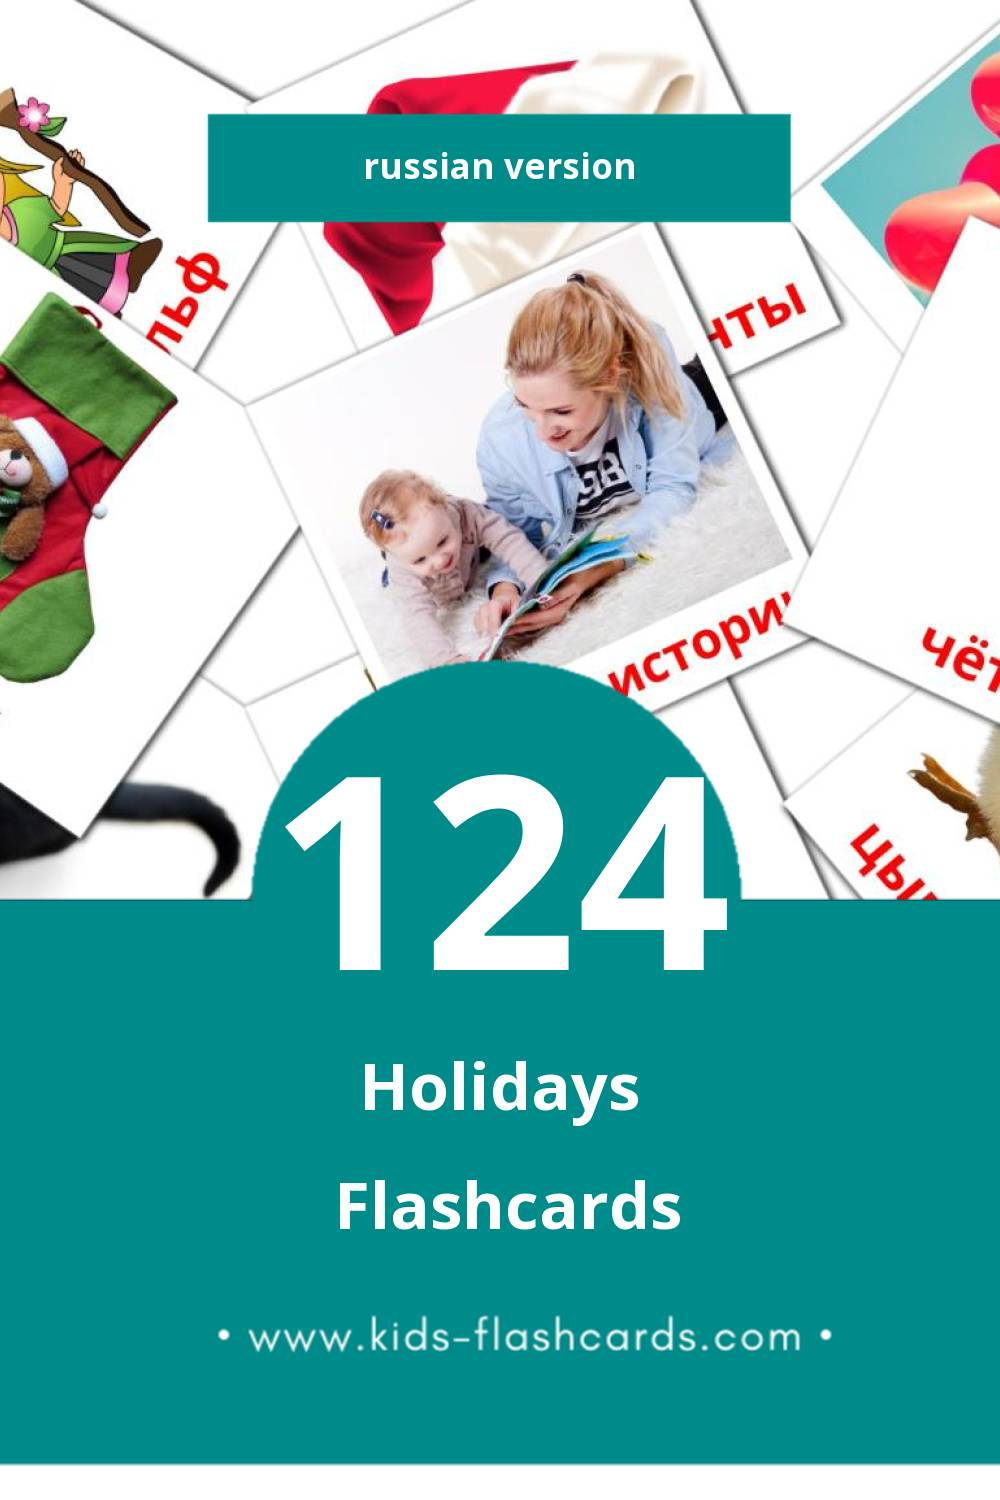 Visual Праздники Flashcards for Toddlers (44 cards in Russian)